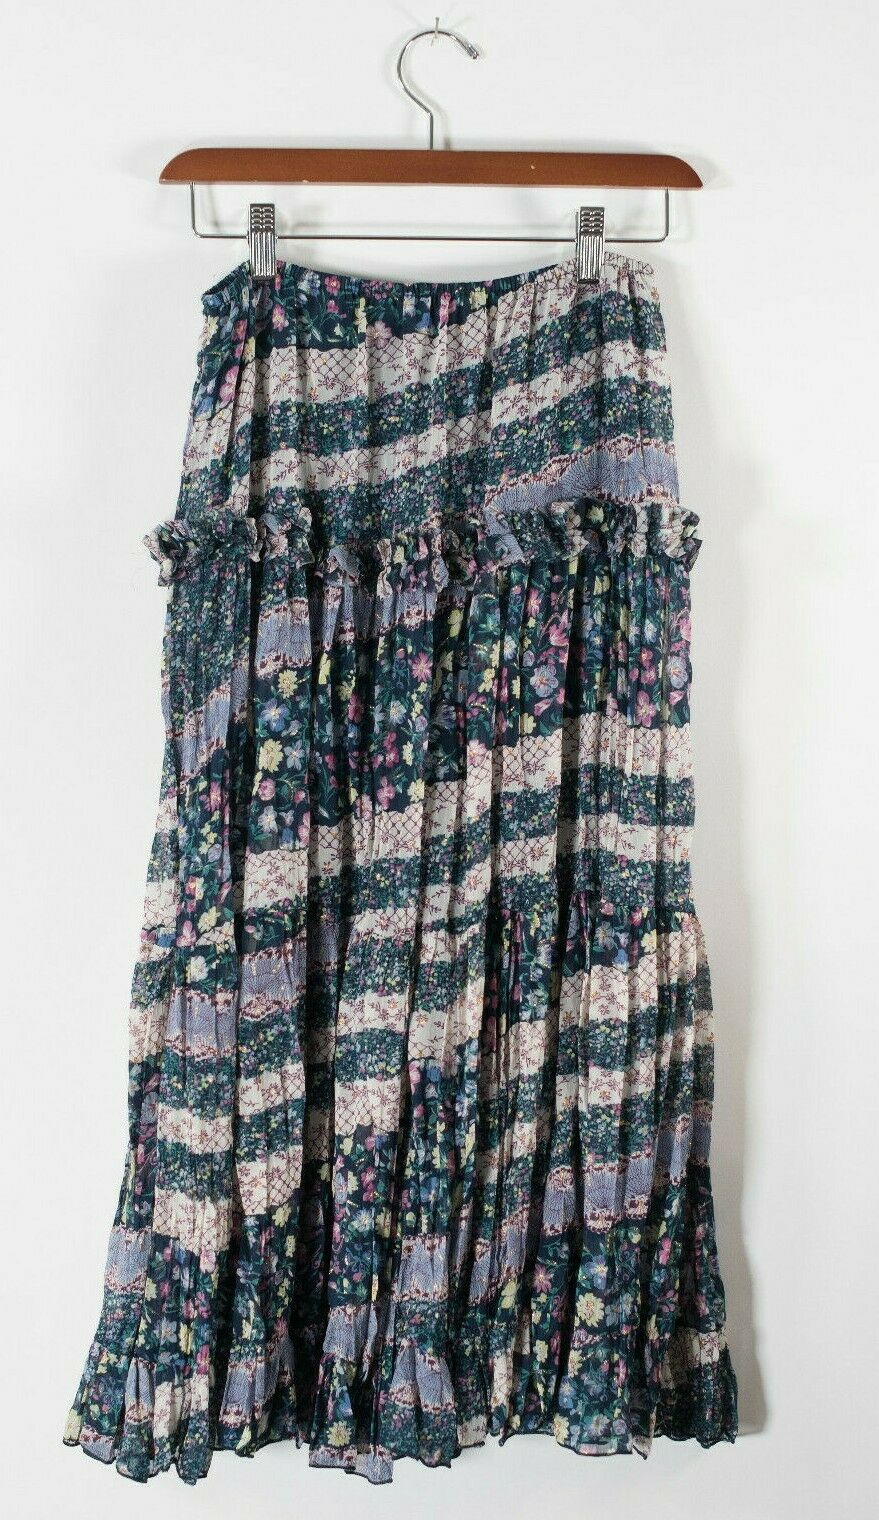 Satrinsha Paris Womens Small Green Skirt Floral Drawstring Elastic Waist Slip